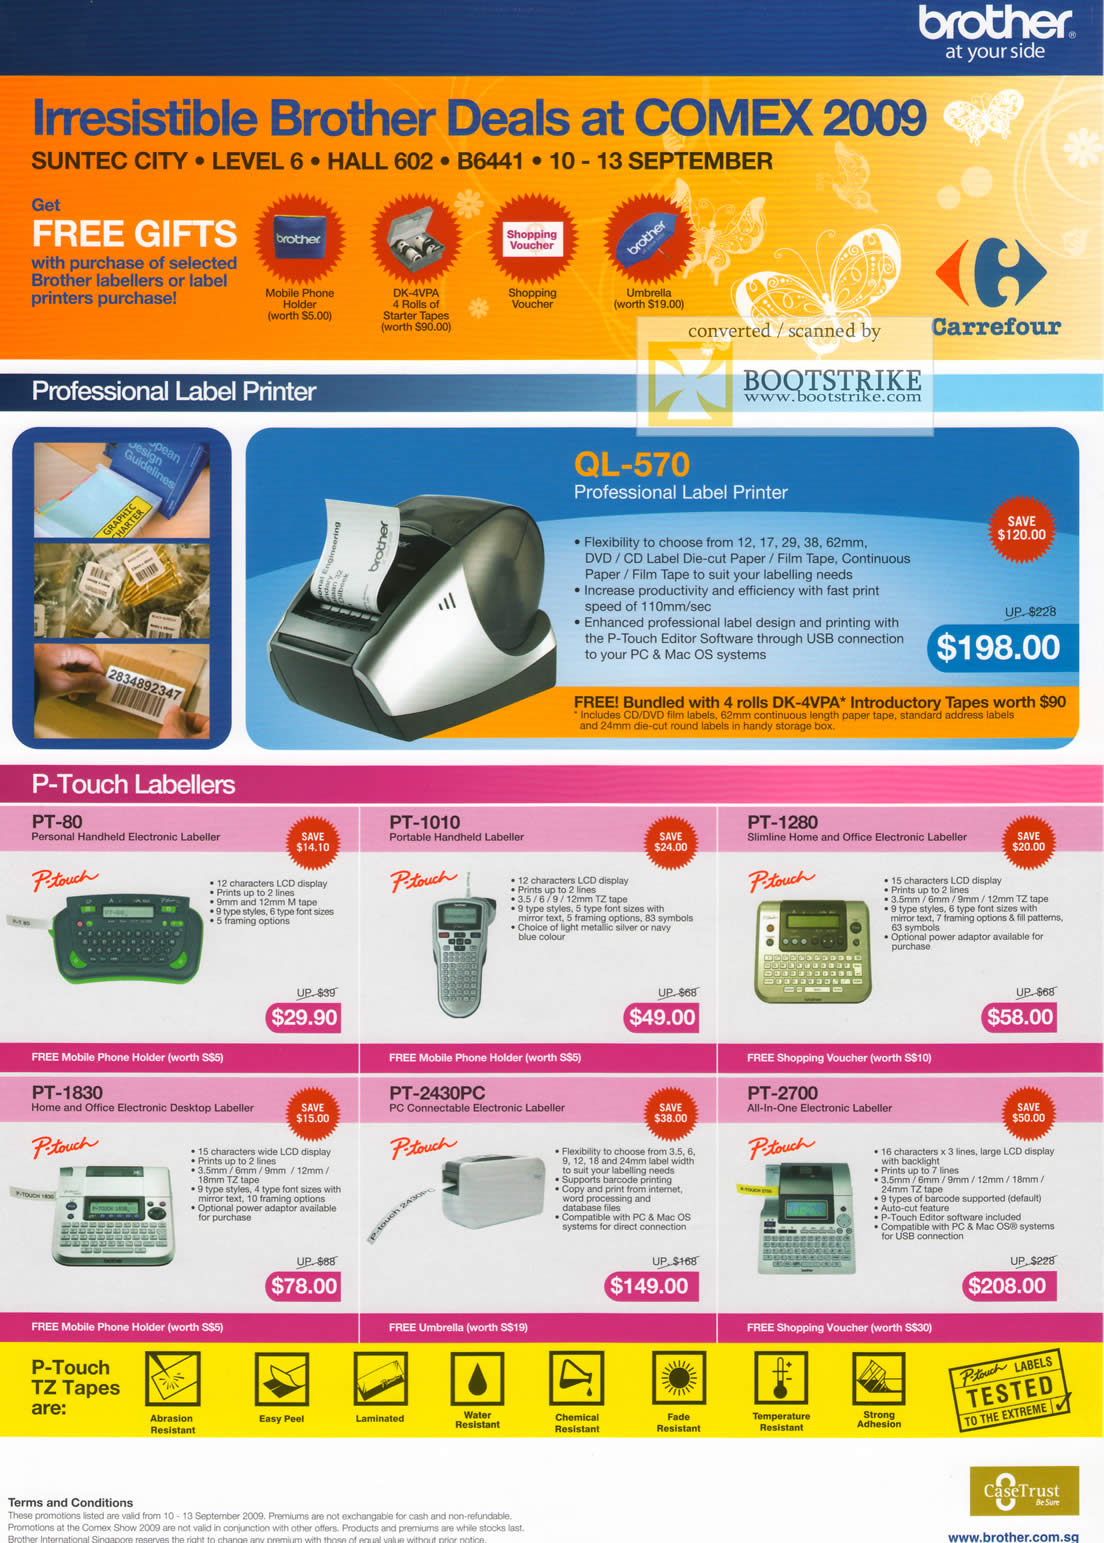 Comex 2009 price list image brochure of Brother Professional Label QL-570 P-Touch Labellers PT